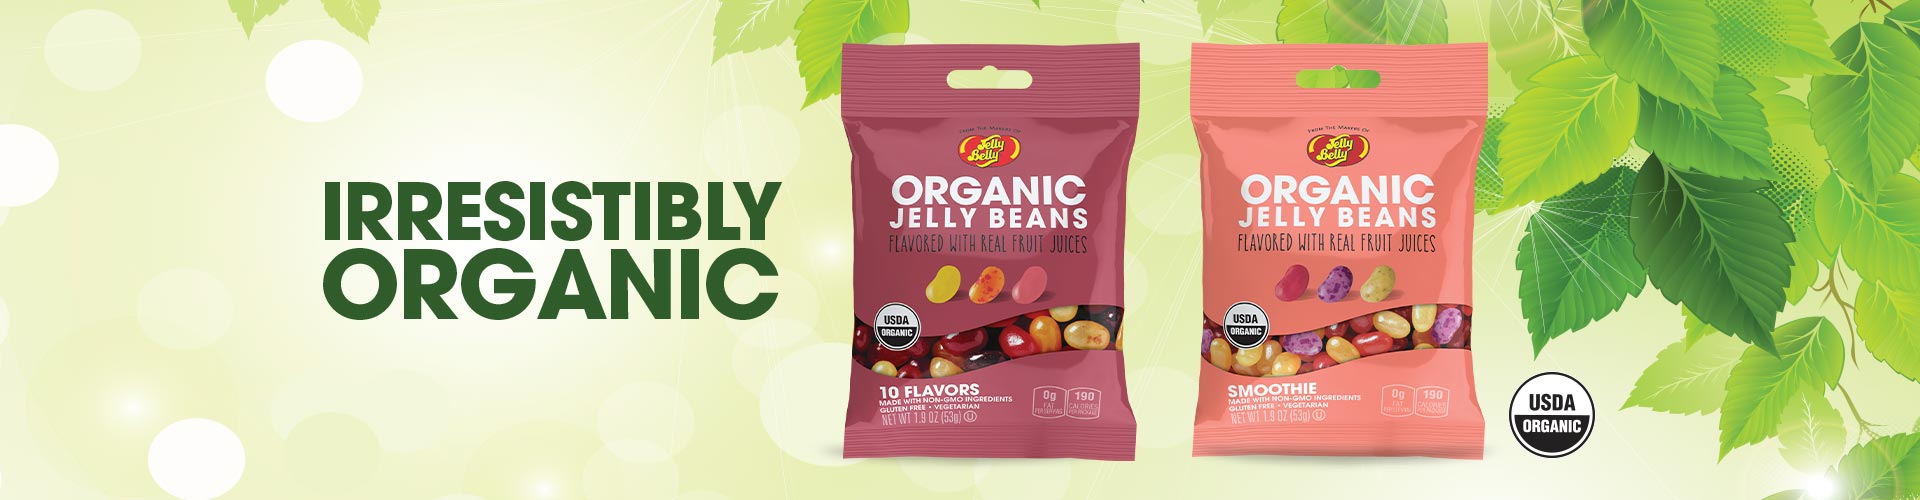 Irresistible Organic Jelly Belly Organic 1.9 oz bags USDA Certified Organic